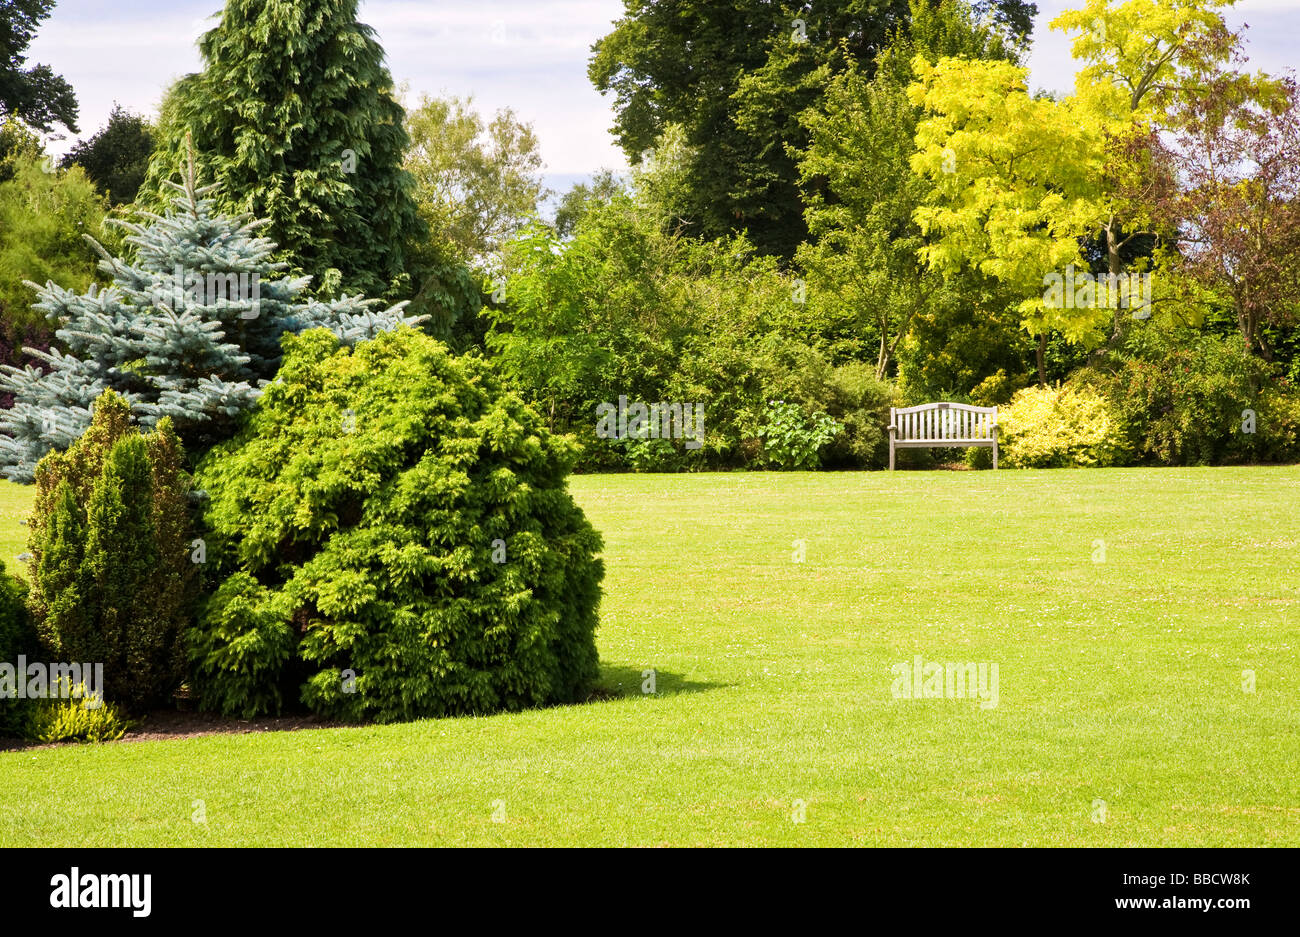 Large trees shrubs and bushes around a lawn at Waterperry Garden Oxfordshire England UK Great Britain - Stock Image